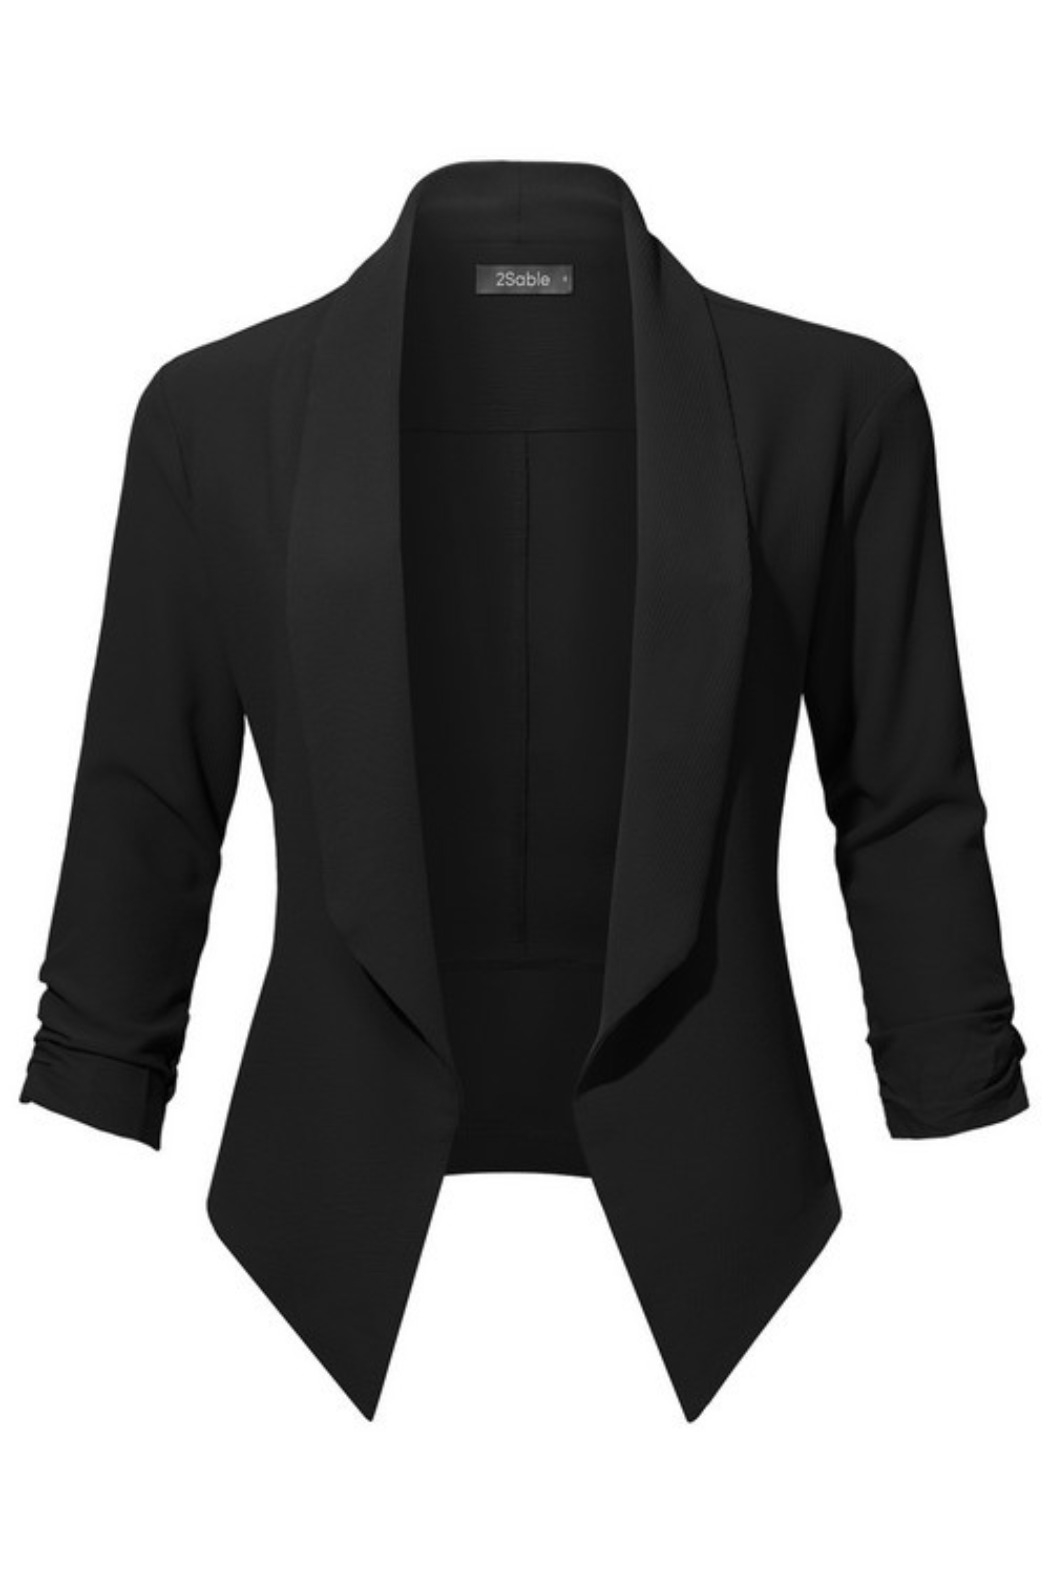 2stable Blazer Jacket - Main Image